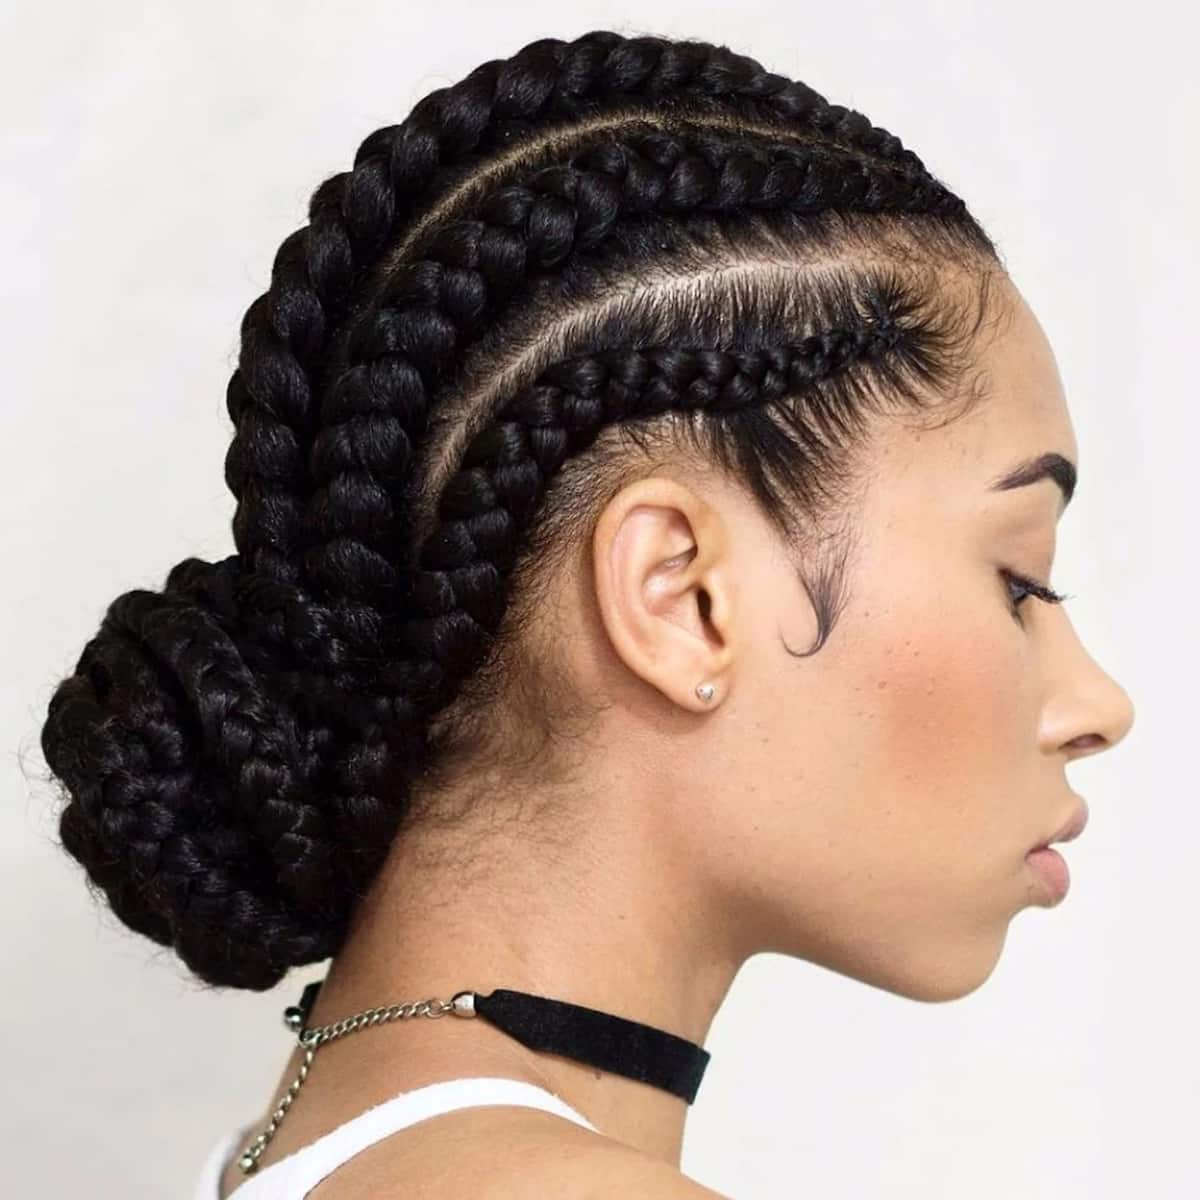 Braid Hairstyles: Easy Hairstyles For Braids (African Hair) Tuko.co.ke